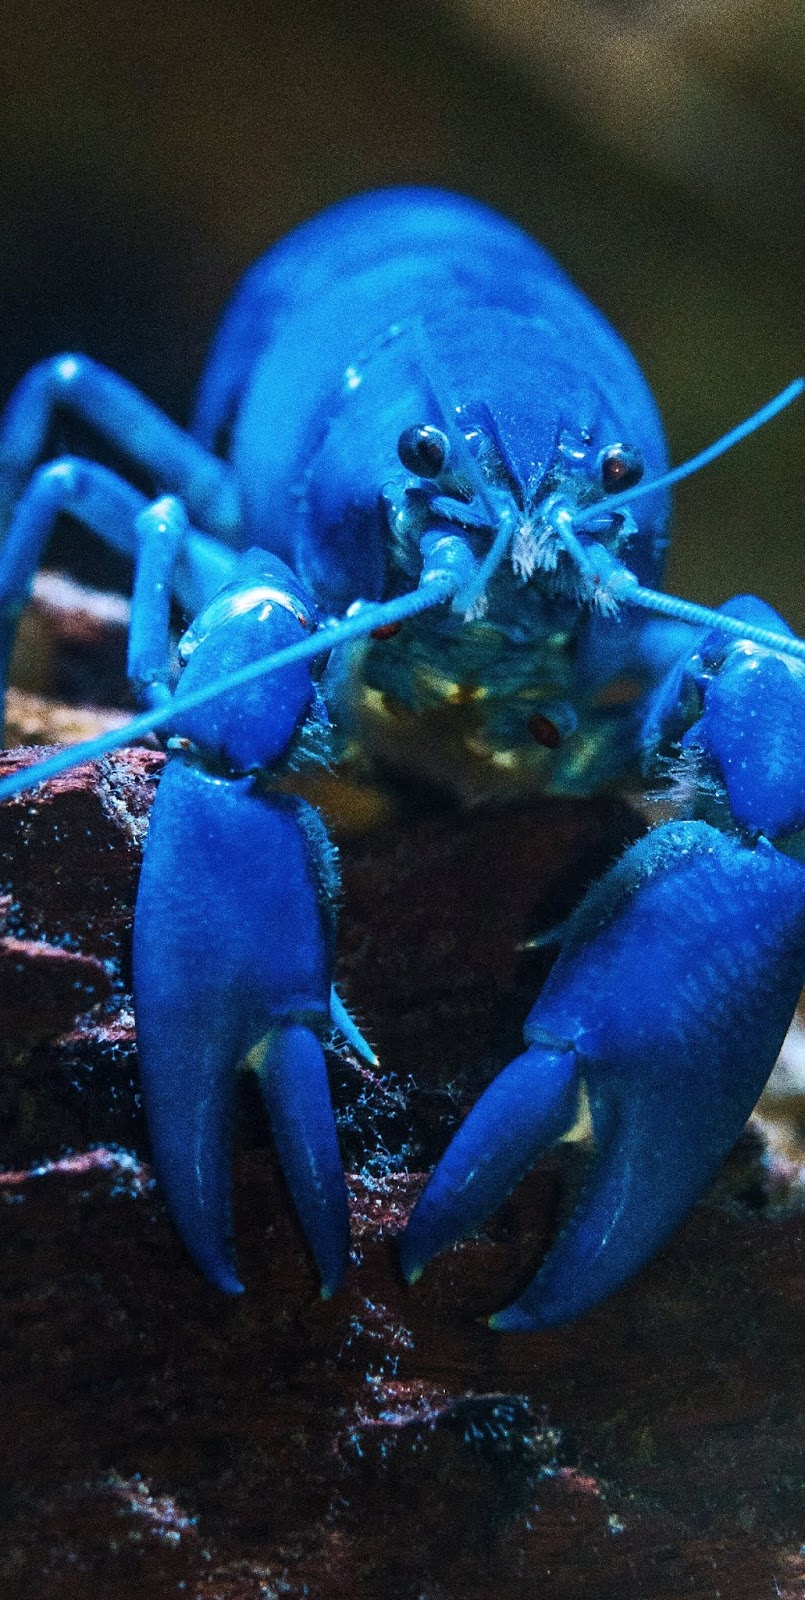 Picture of a blue lobster.